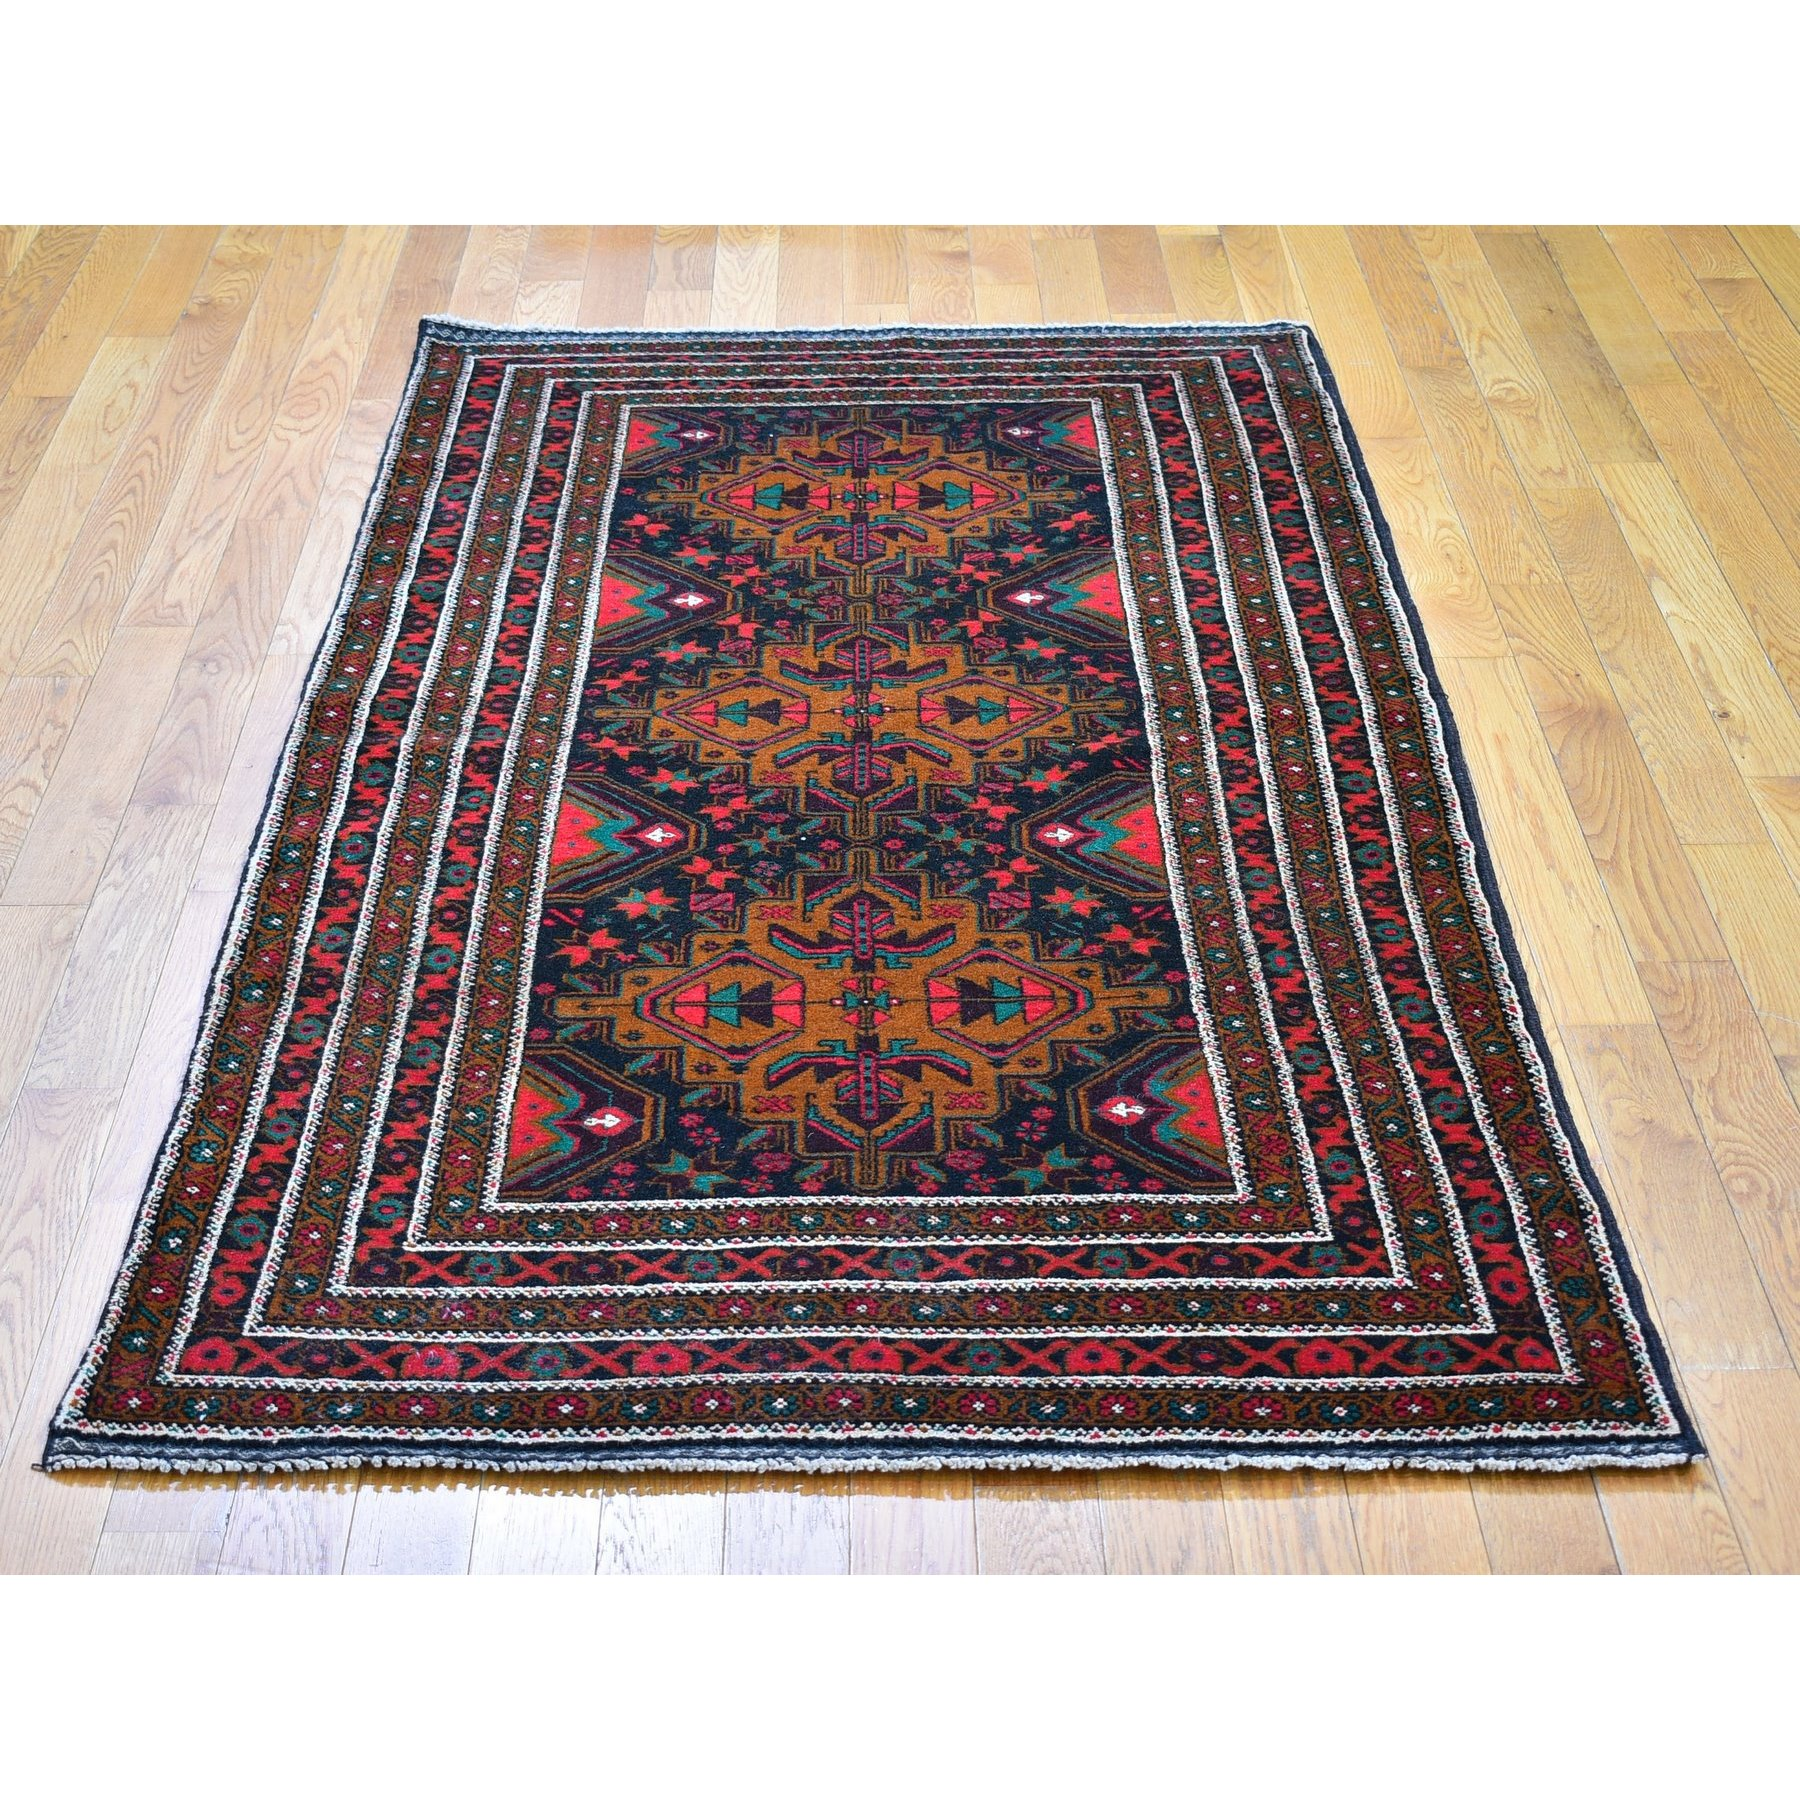 """3'7""""x6'5"""" Charcoal Black Vintage Persian Baluch Excellent Condition Organic Wool Hand Knotted Oriental Rug"""